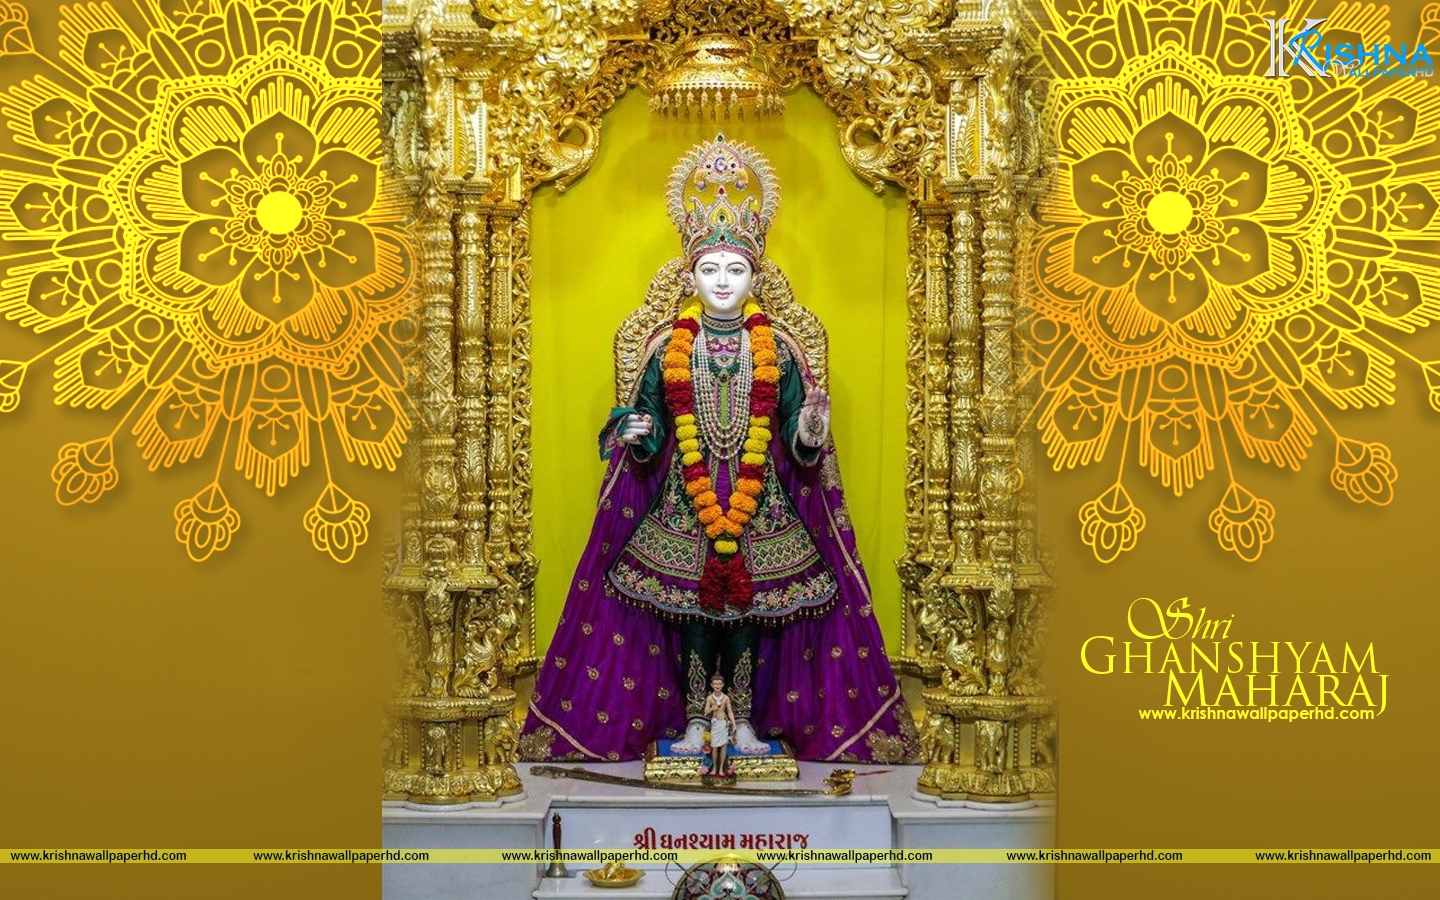 Ghanshyam Maharaj Wallpaper